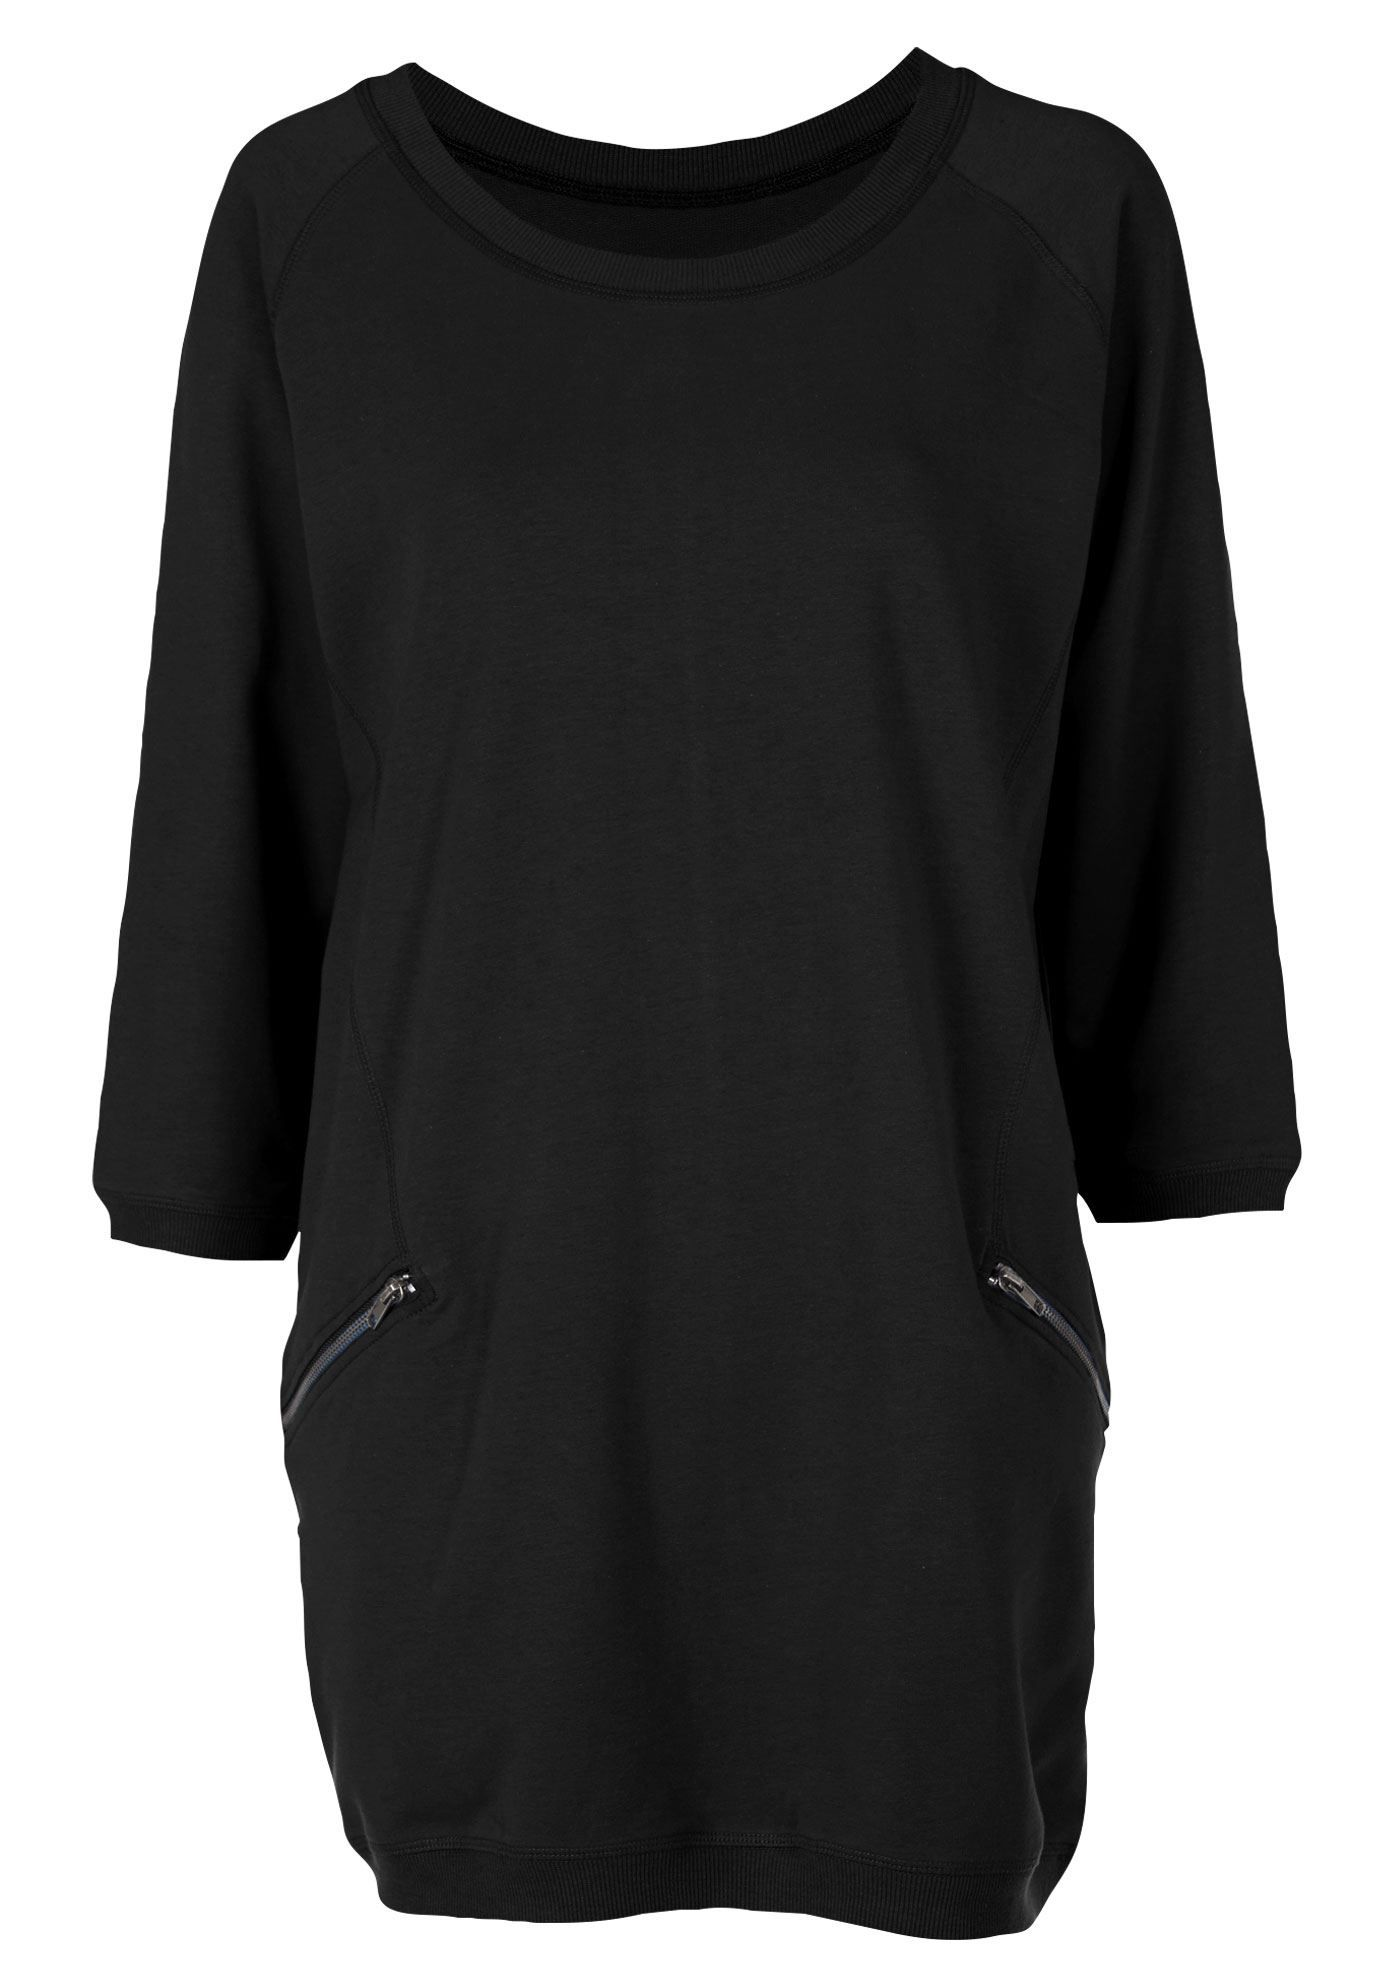 4ba5d727e4a6 French Terry Zip Pocket Tunic by ellos - Women's Plus Size Clothing ...